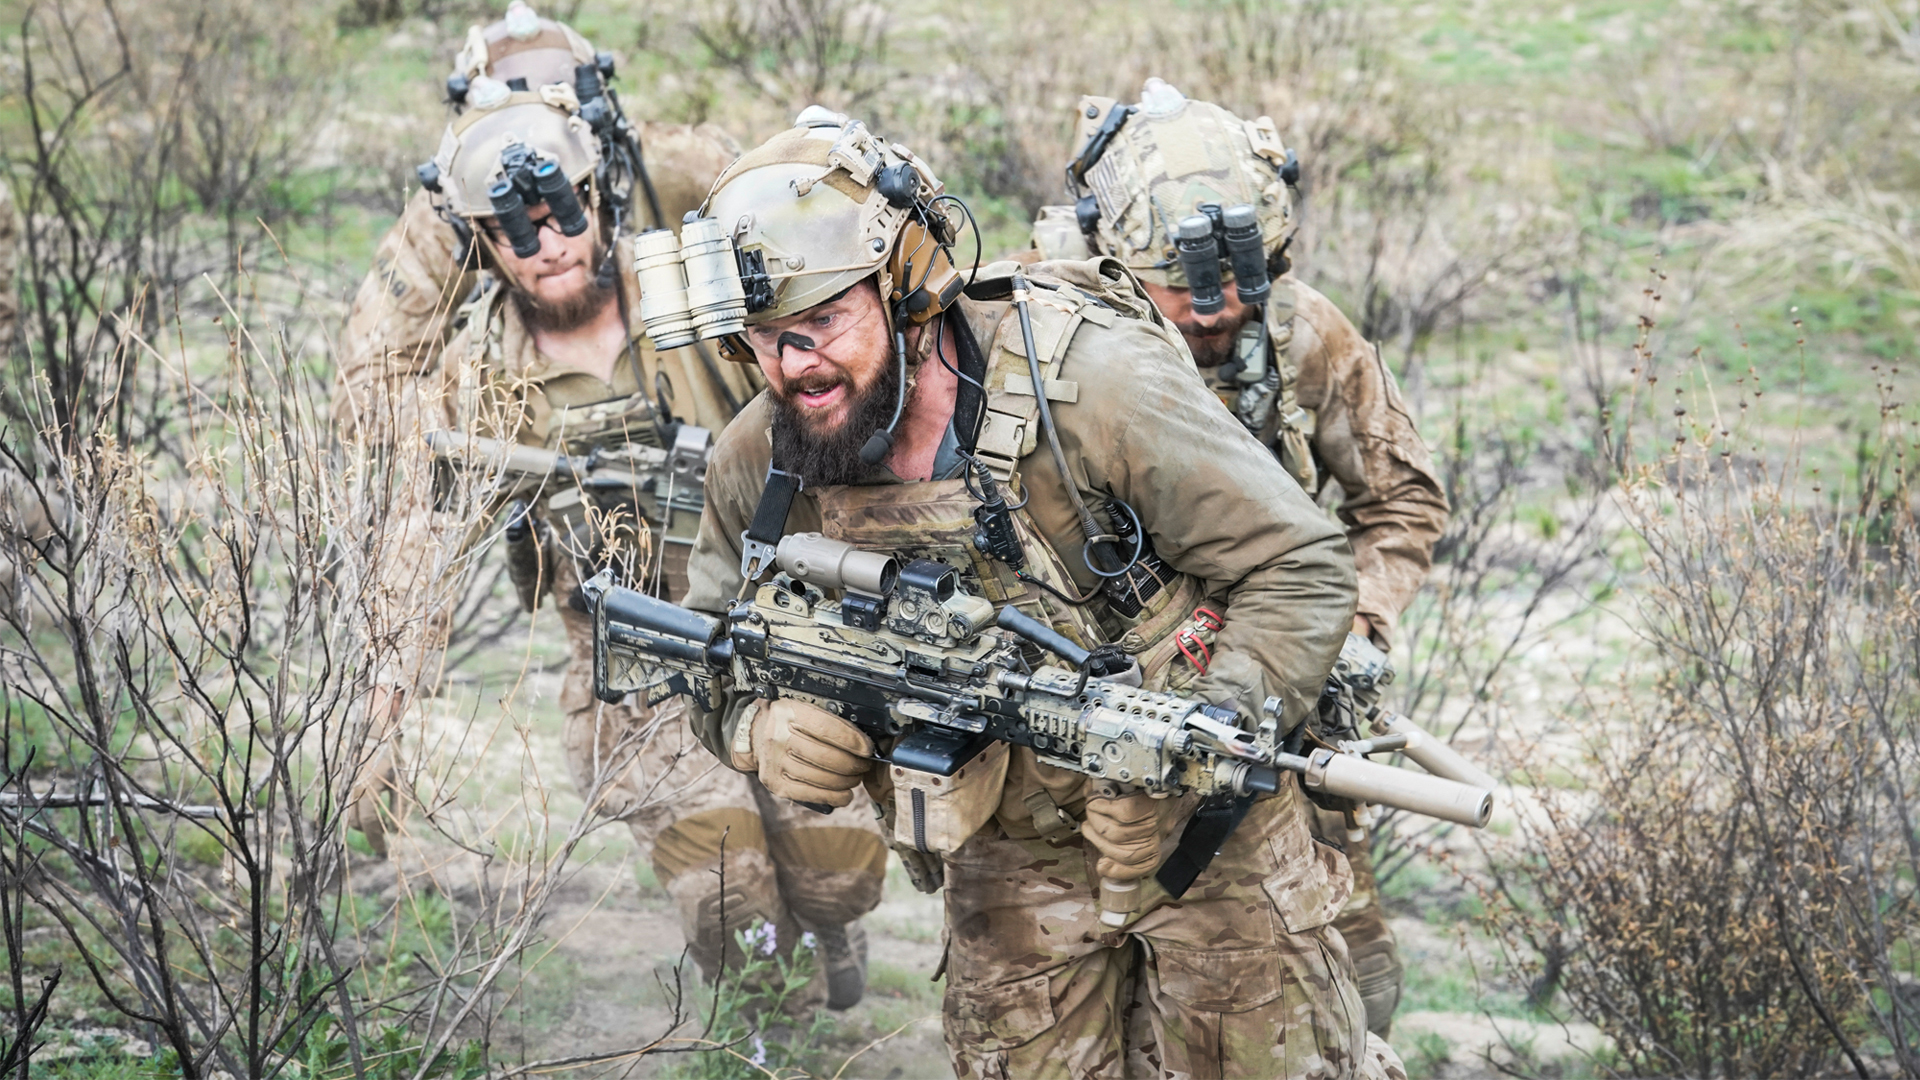 Watch SEAL Team Season 1 Episode 21: The Graveyard of Empires - Full show  on CBS All Access